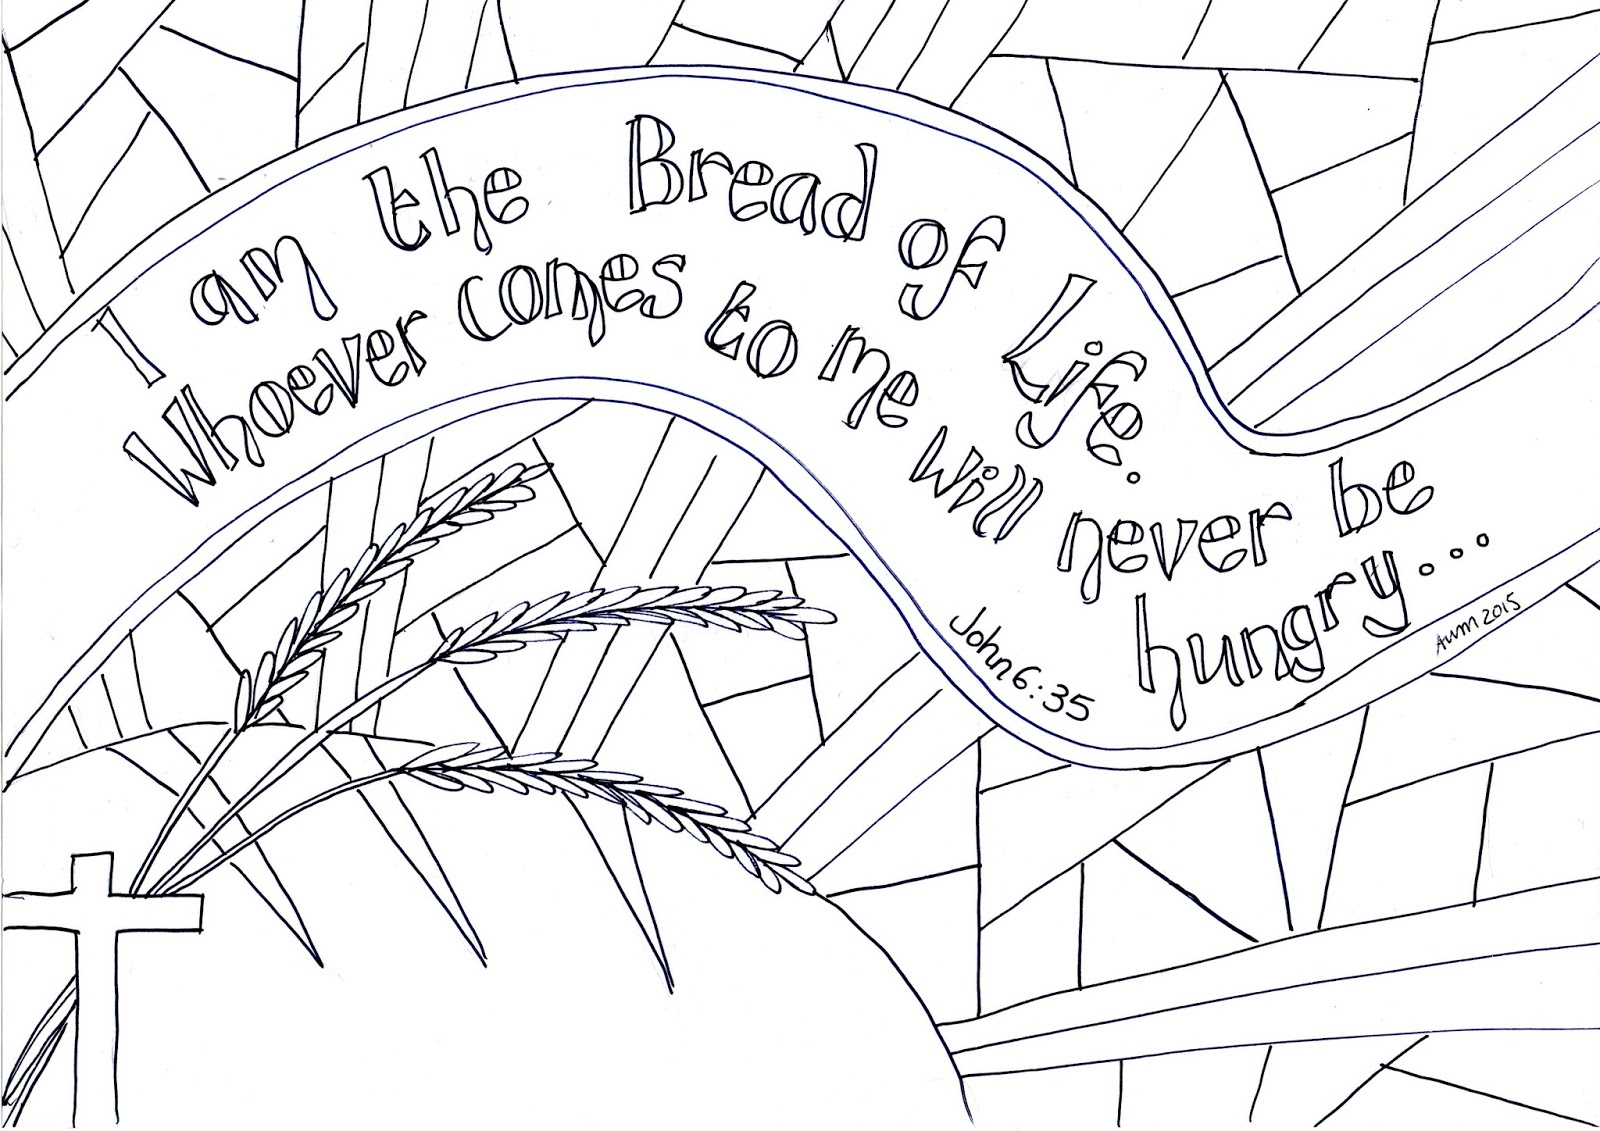 bread of life coloring pages - photo#1